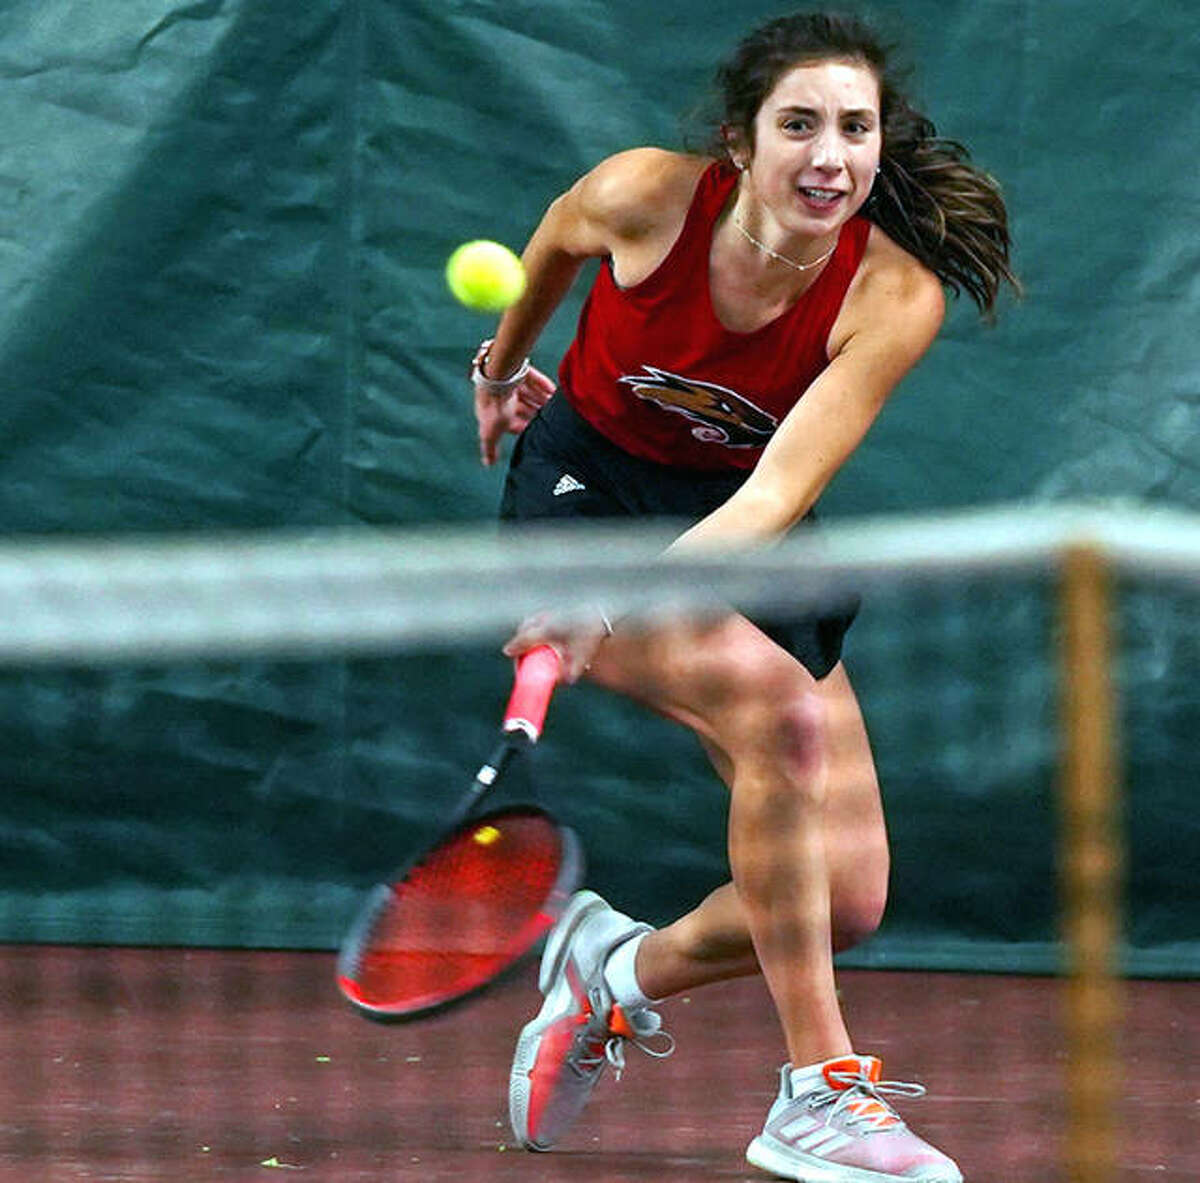 SIUE's Jordan Schifano went down to the wire in her No. 2 singles match Sunday at Valparaiso, but pulled out a 7-5, 7-5 victory.